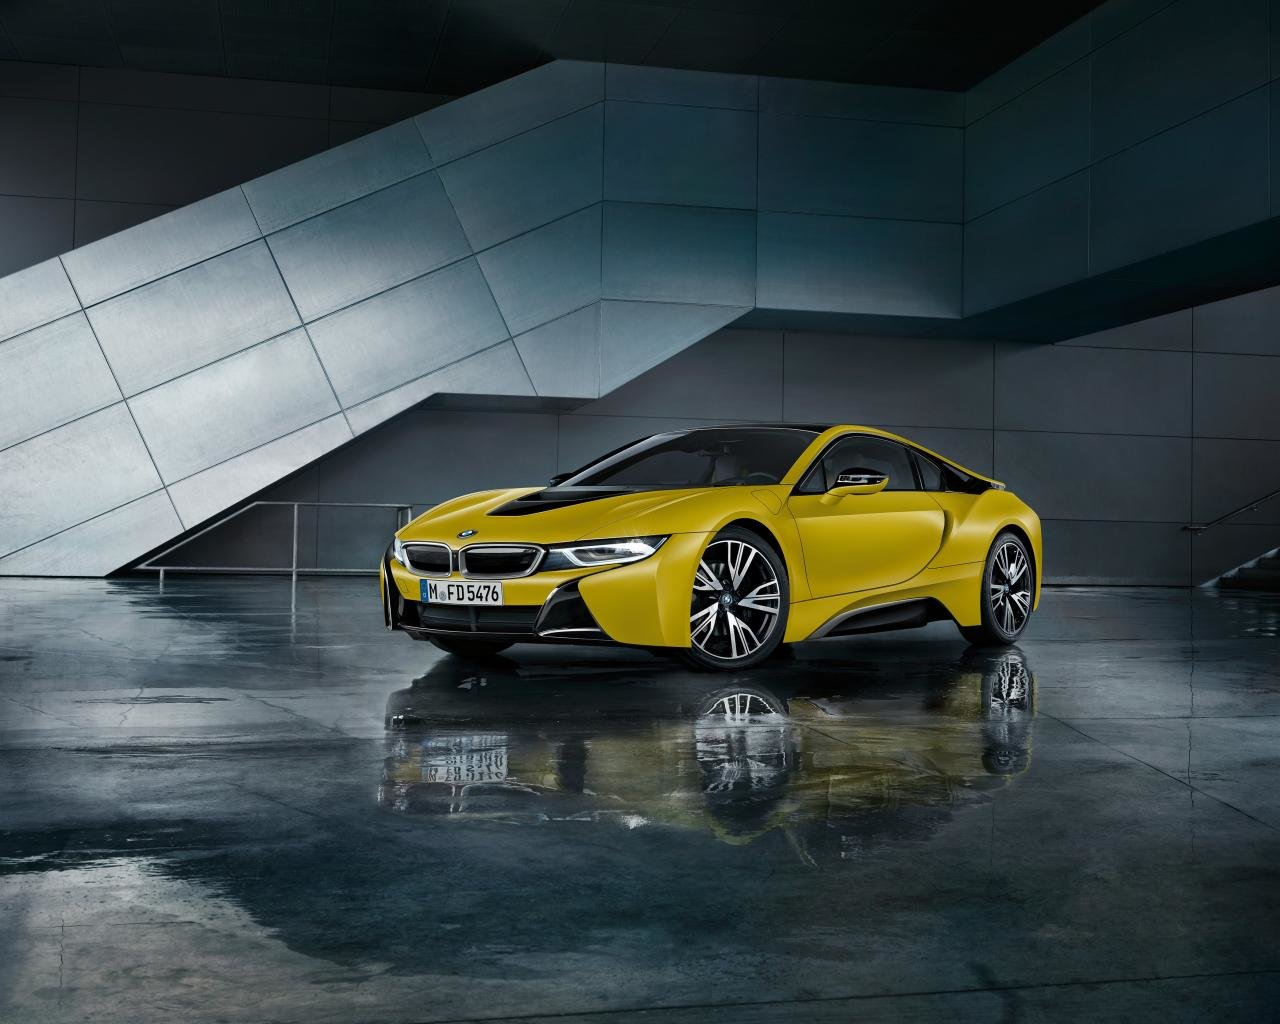 Bmw I8 Wallpapers 1280x1024 Desktop Backgrounds